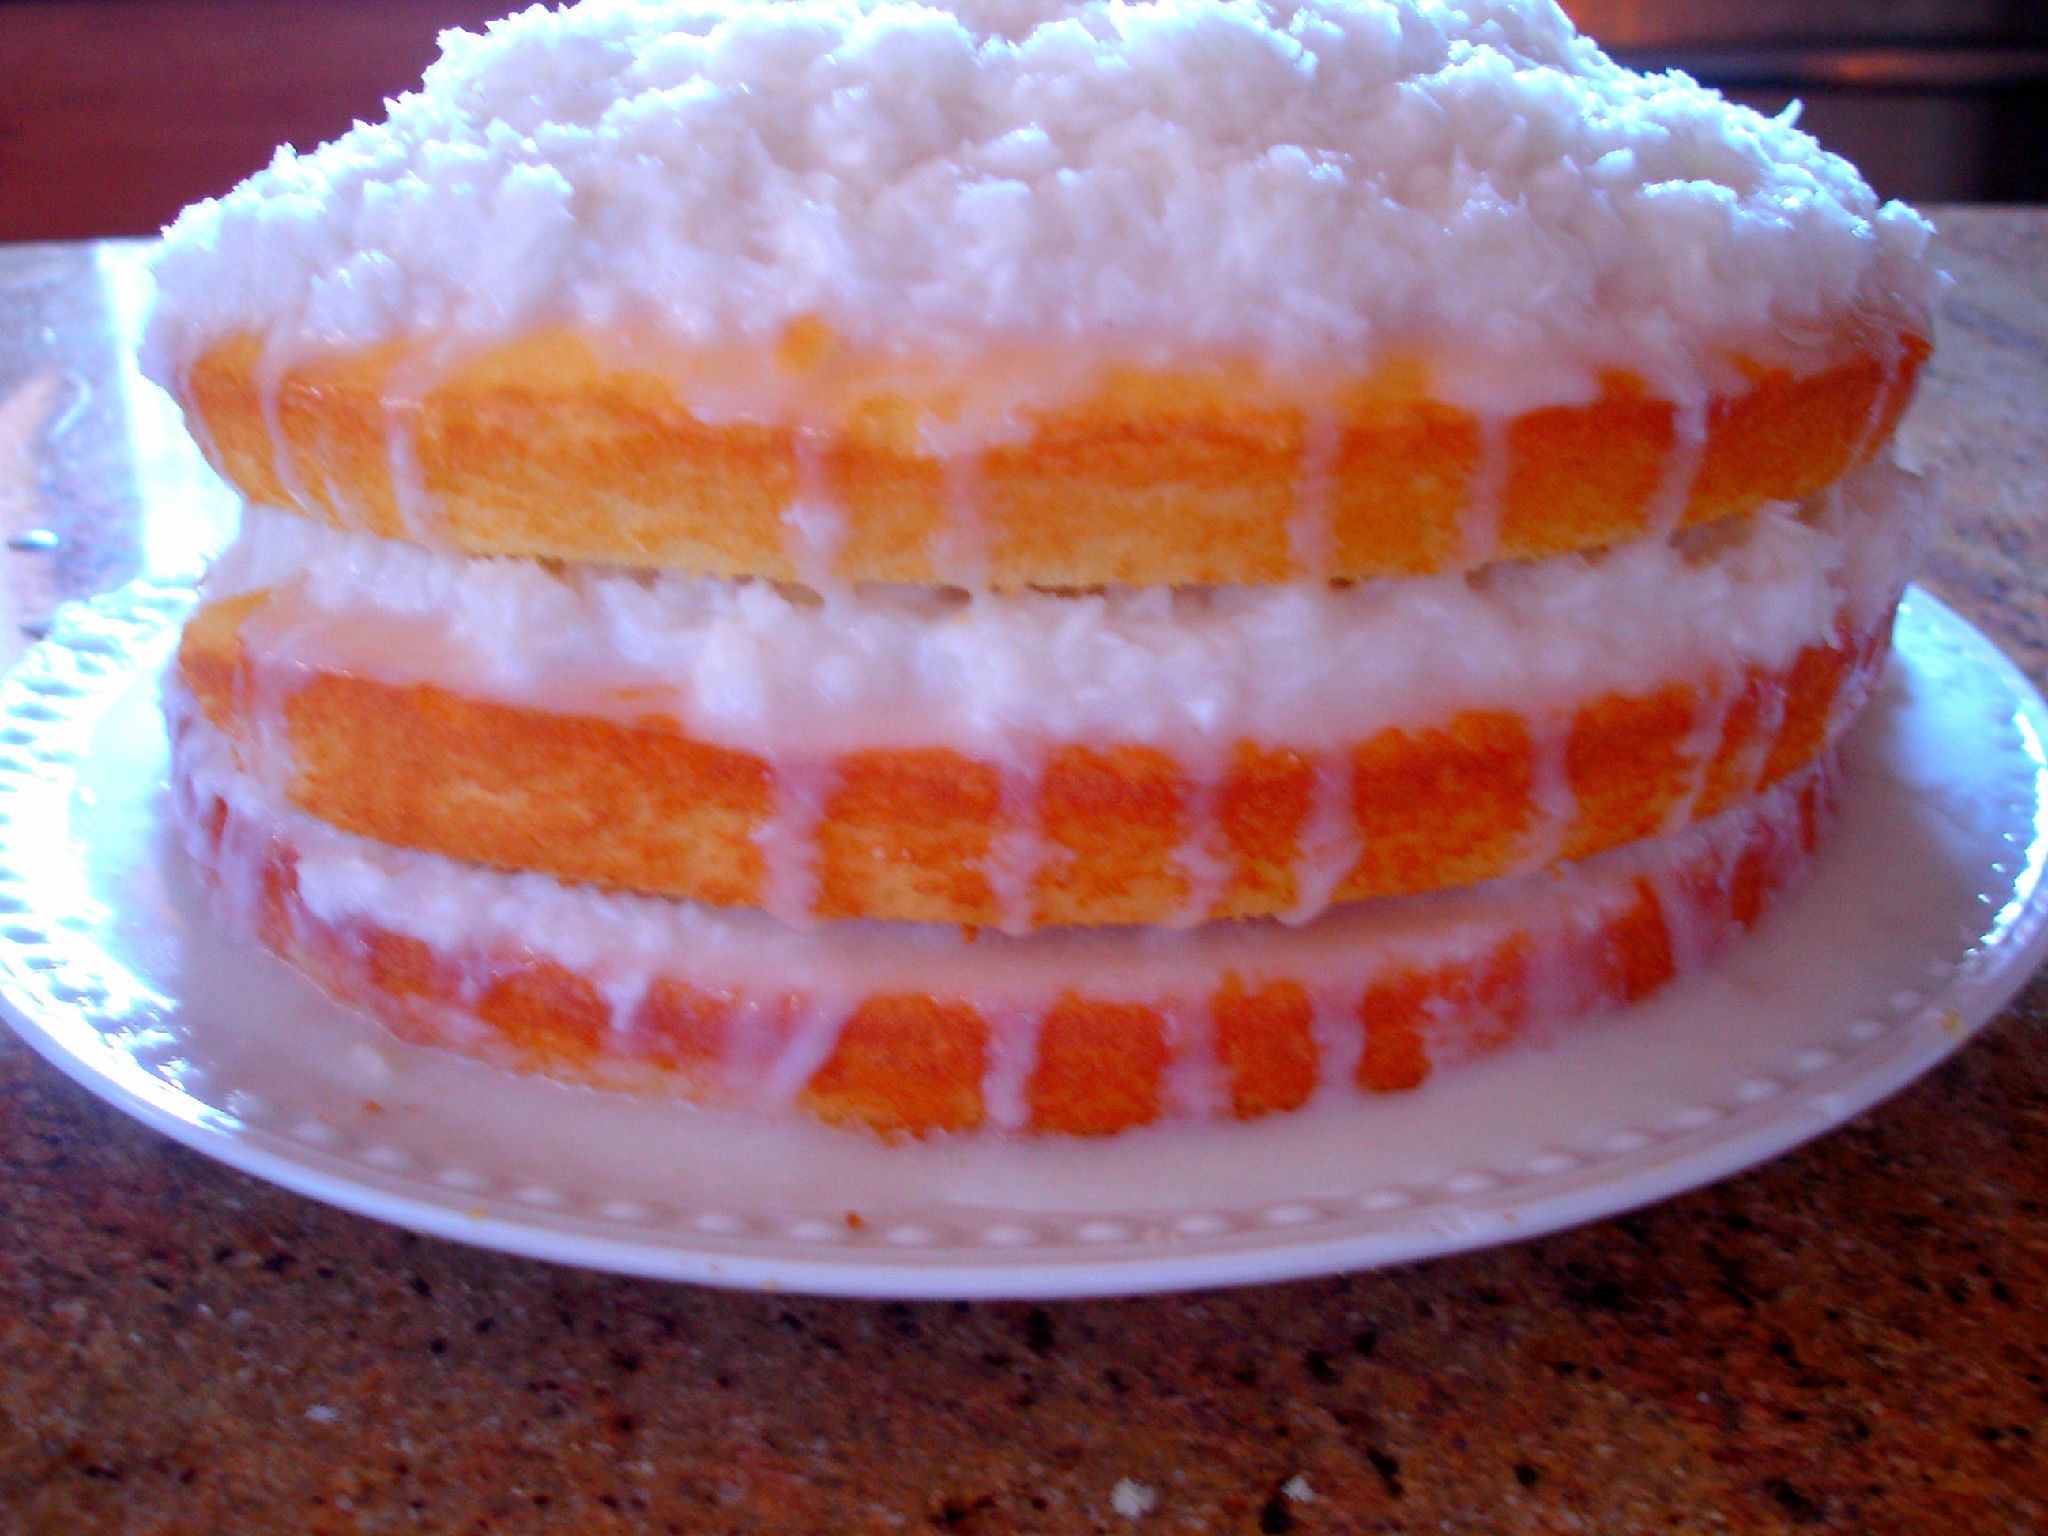 Coconut cake with sour cream filling syrup and biscuits